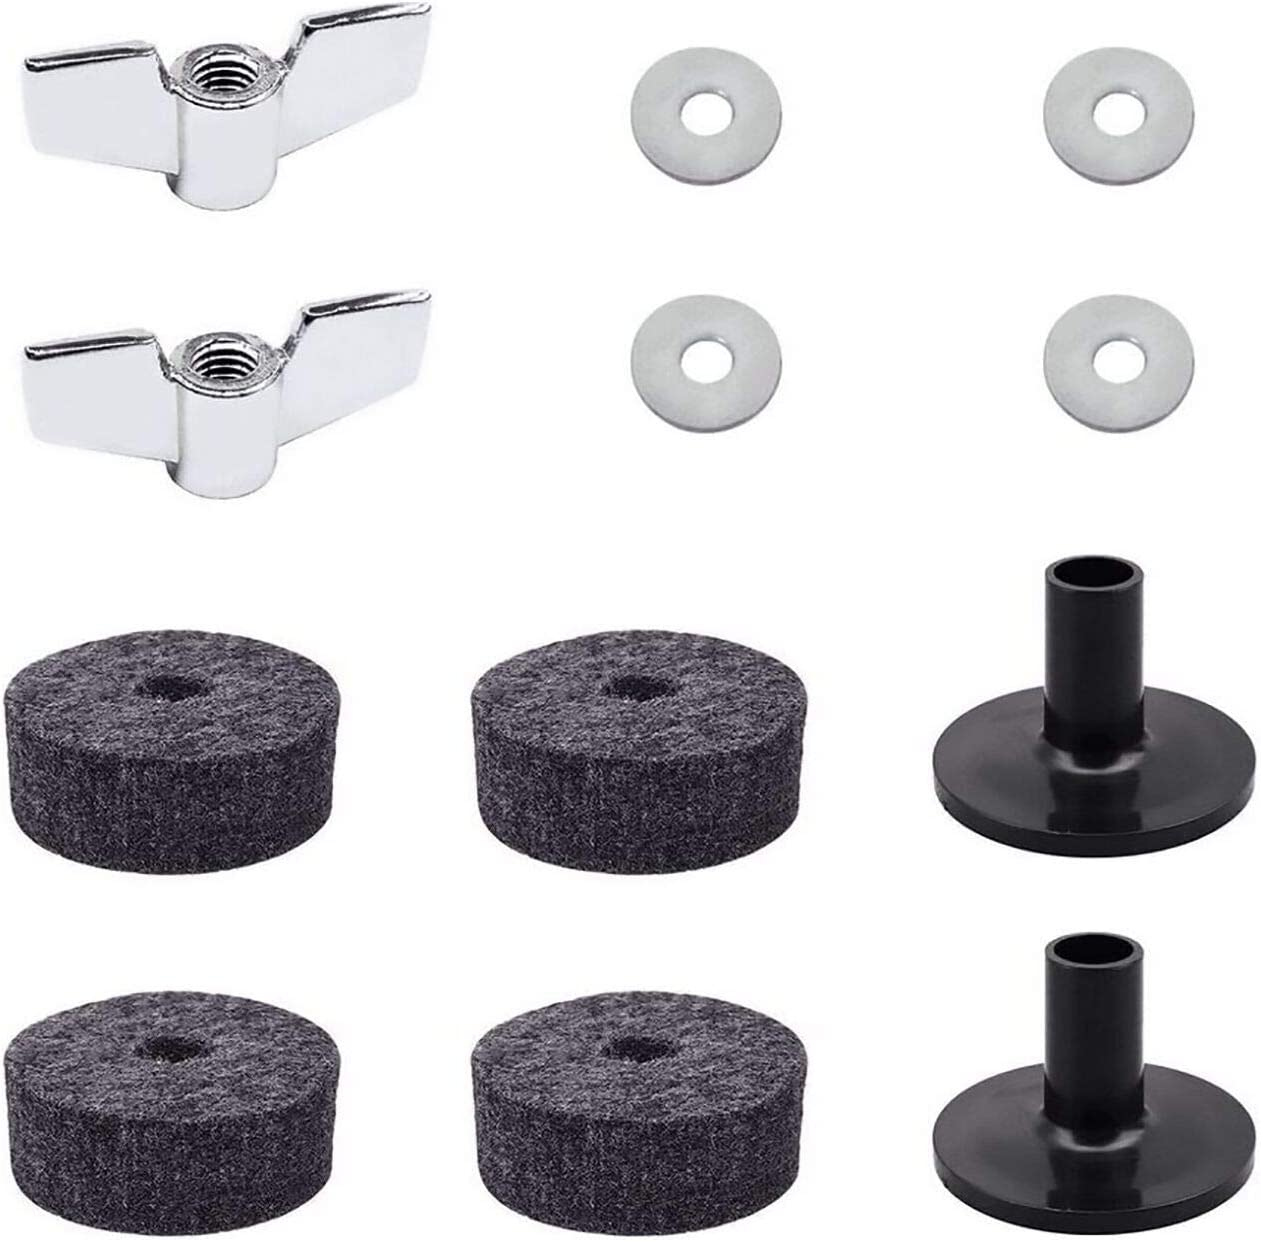 Cymbal Replacement Accessories 12pcs 4 New color C Felts Attention brand Clutch 2 Hi-Hat